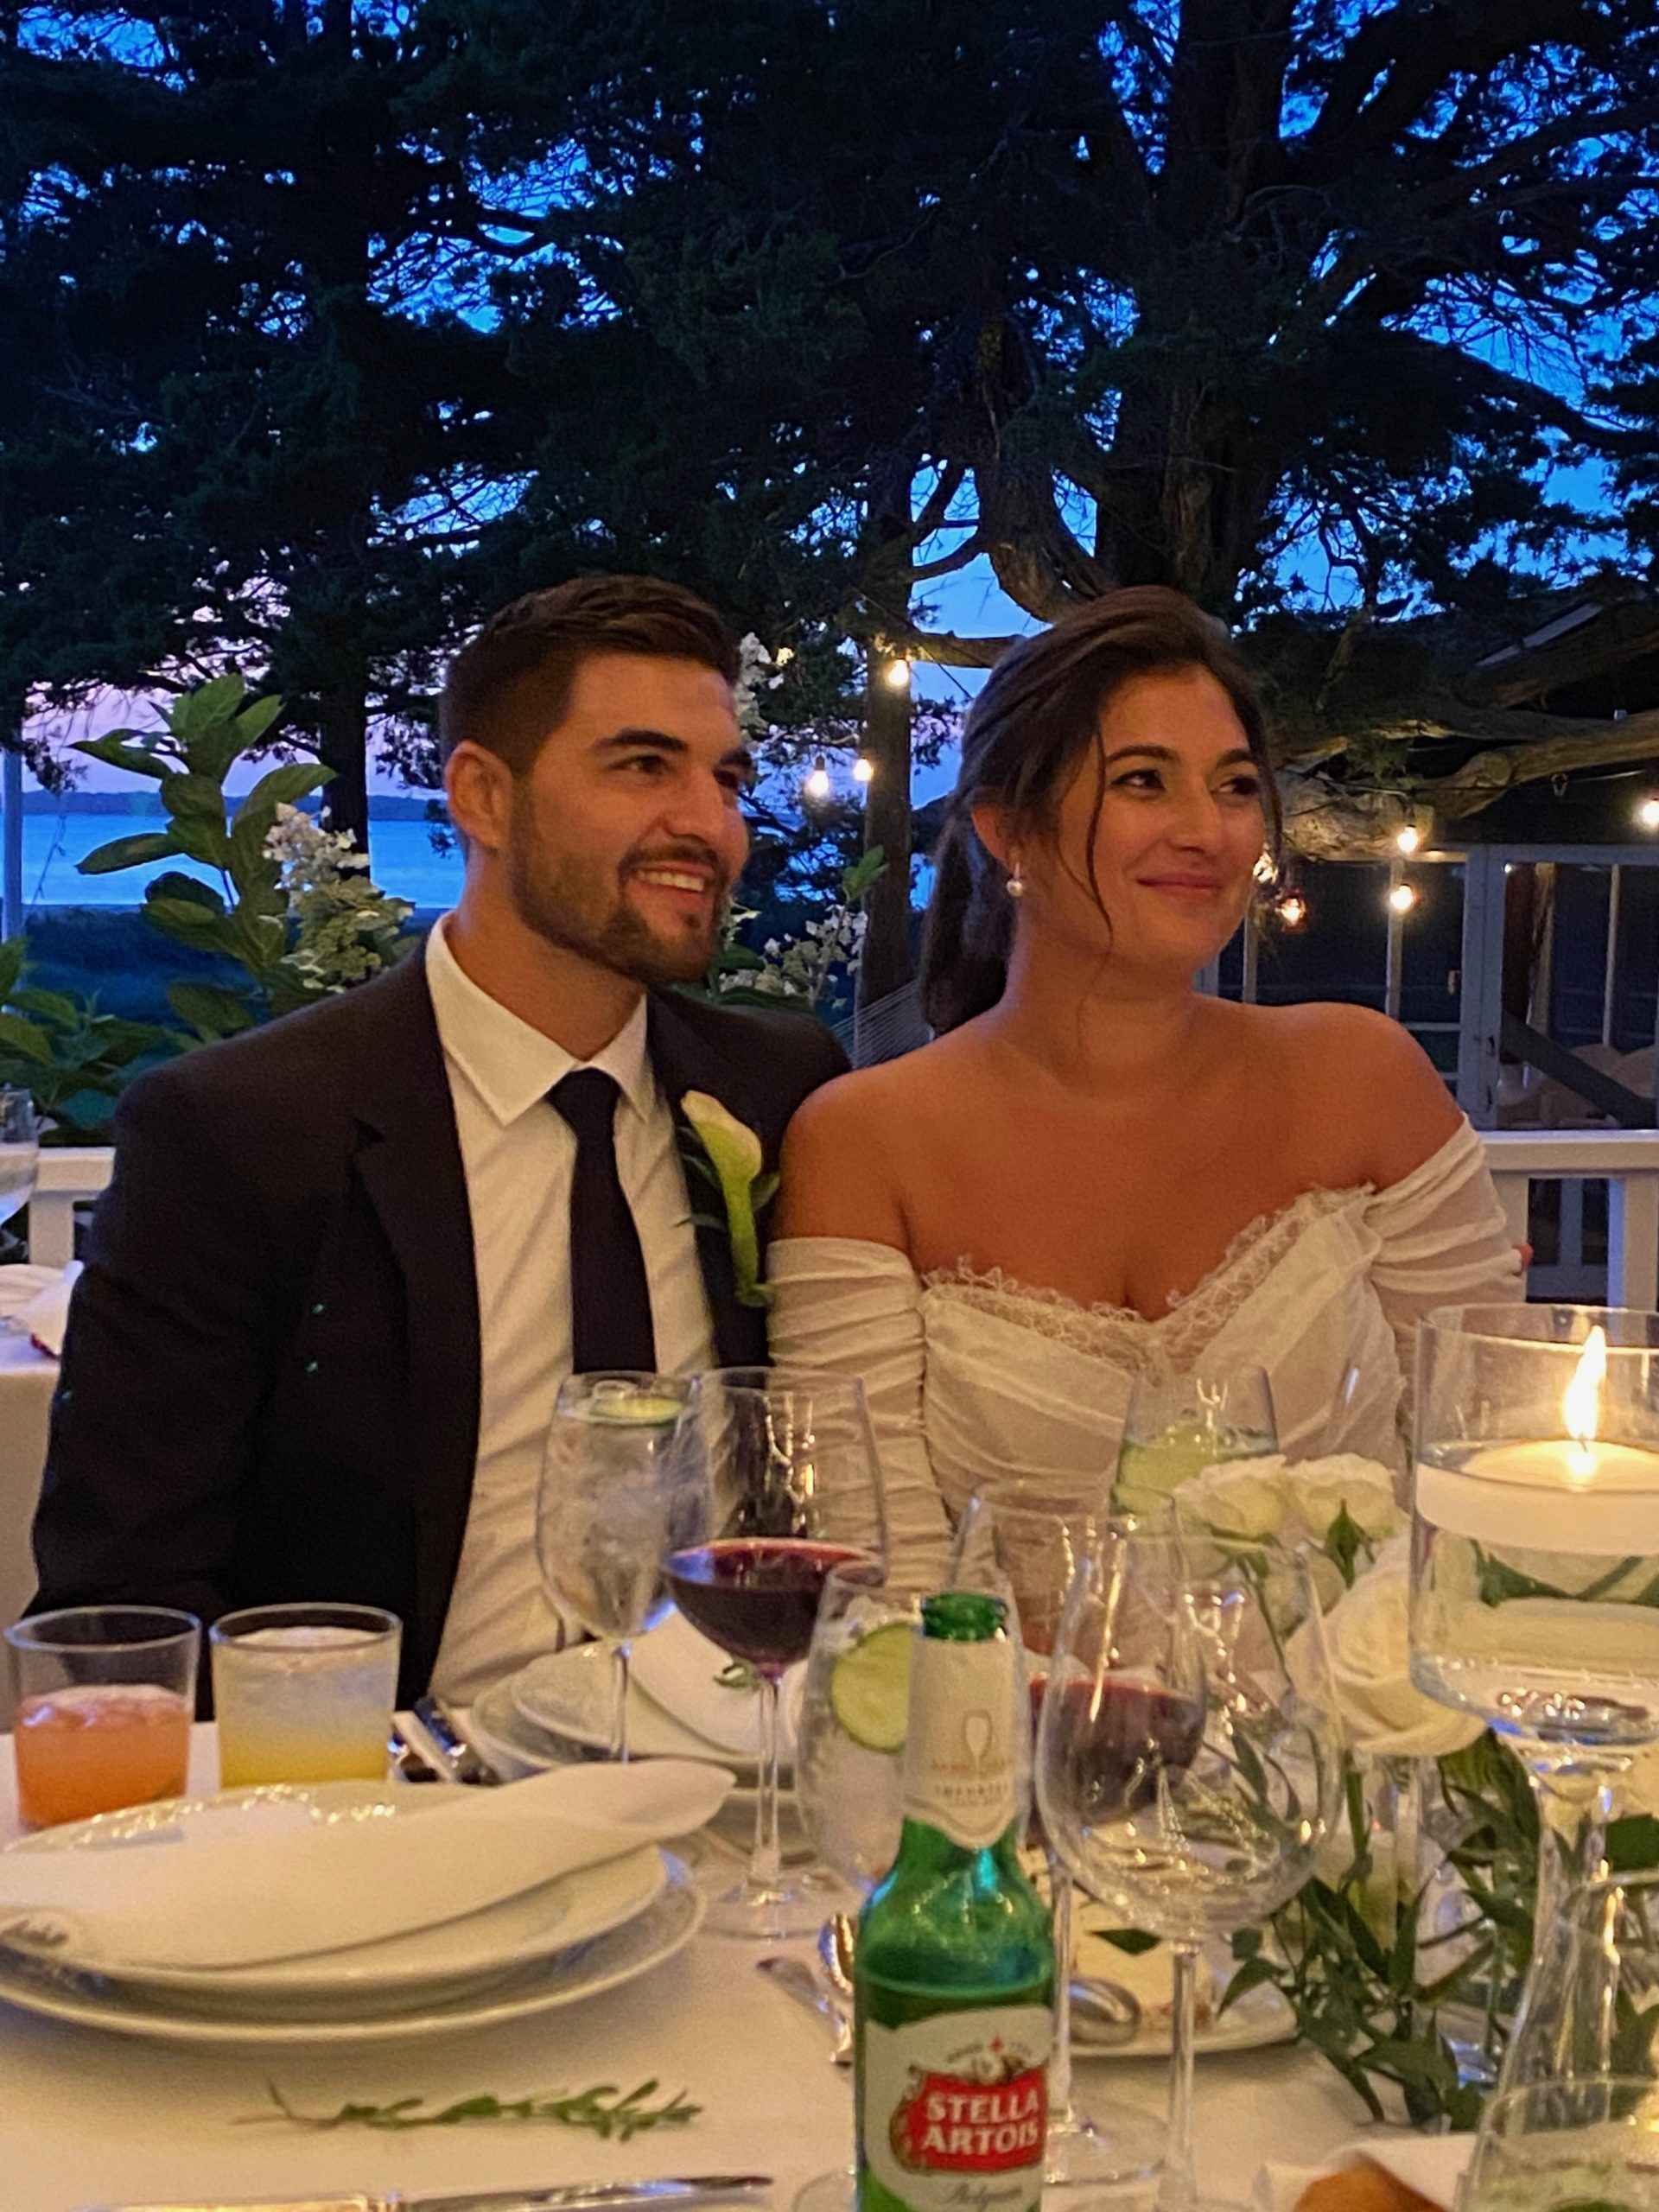 Meaghan Cornacchio and Chase Andreassi both from Southampton were married Sept 12, 2020 at the Basilica Parish of Sacred Hearts if Jesus and Mary. The happy couple will reside in their new home in Southampton.